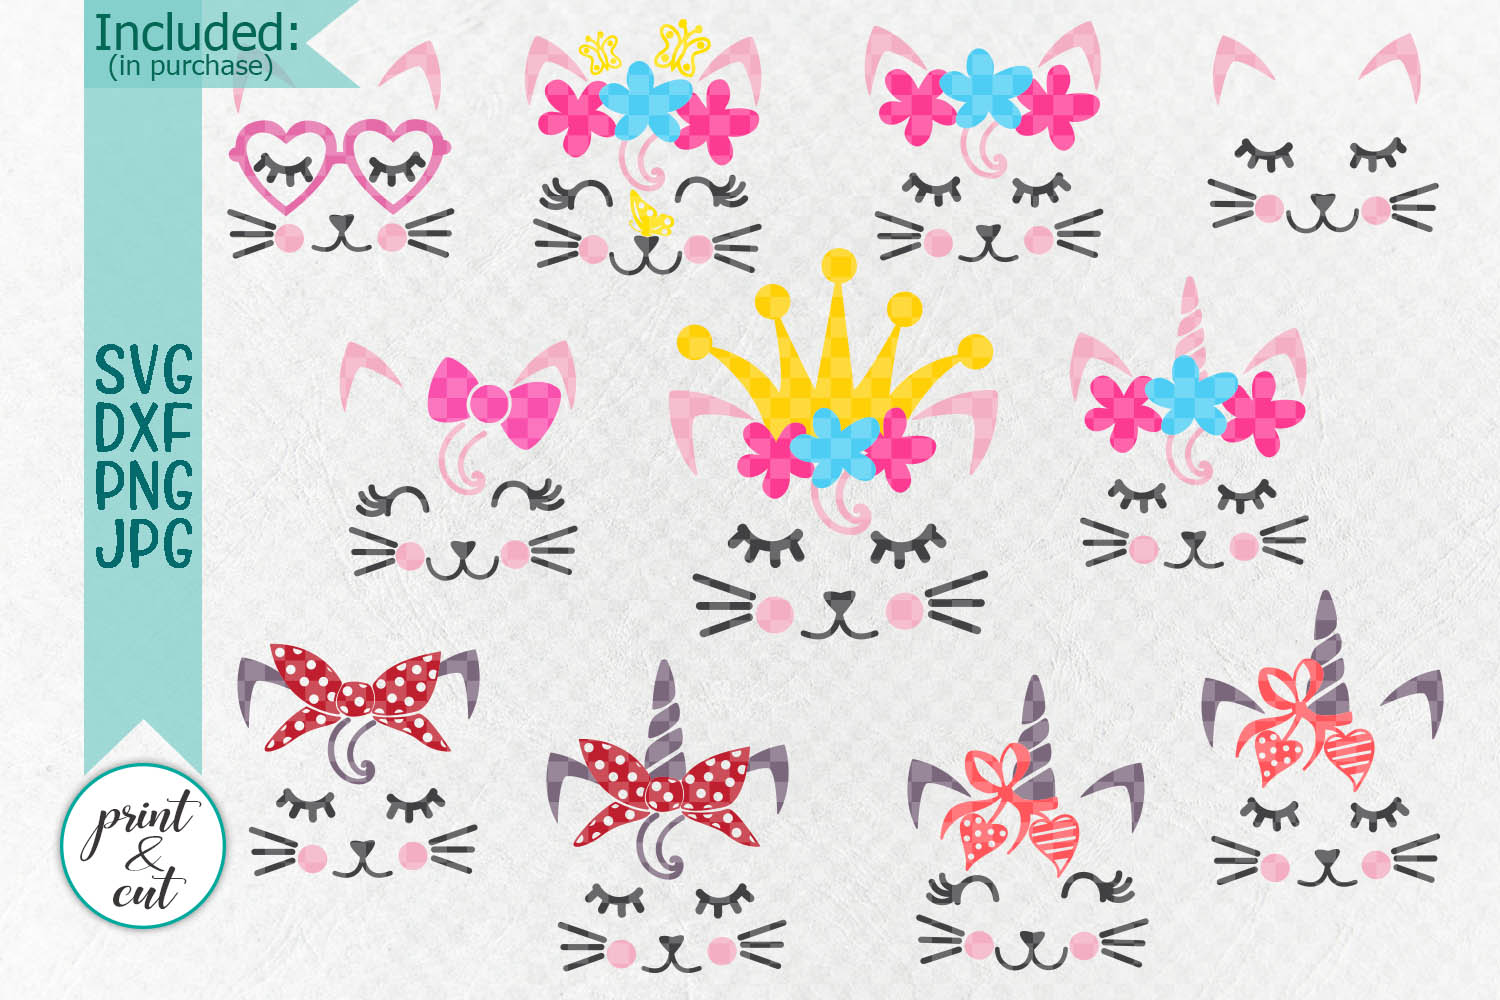 Cat Kitty face bundle with flowers hearts unicorn crown svg example image 2